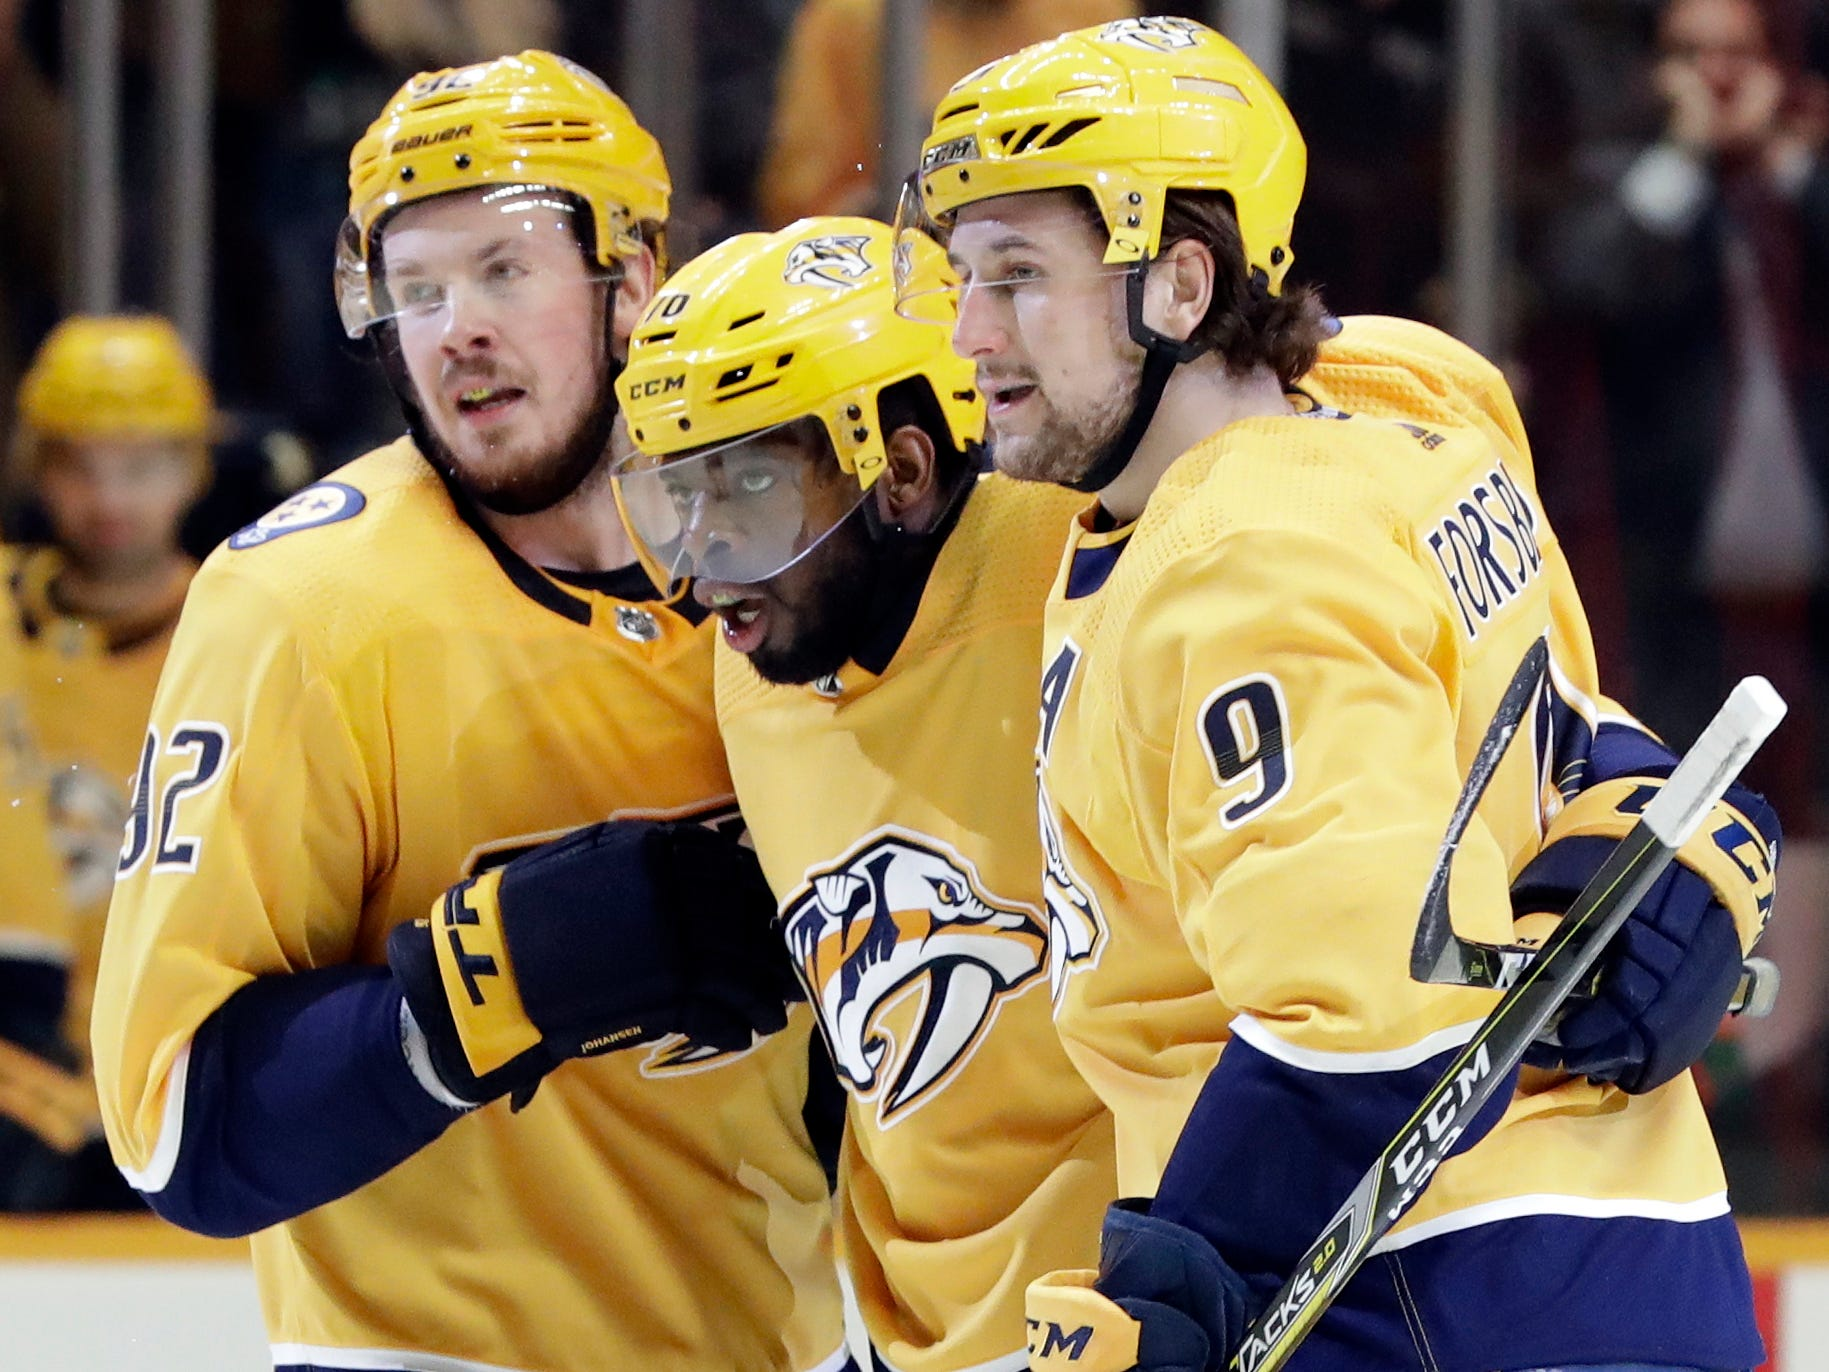 Feb. 12, 2019 -- Red Wings 3, Predators 2 -- Nashville Predators defenseman P.K. Subban, center, celebrates with Ryan Johansen (92) and Filip Forsberg (9), of Sweden, after Subban scored against the Detroit Red Wings during the second period of an NHL hockey game Tuesday, Feb. 12, 2019, in Nashville, Tenn.